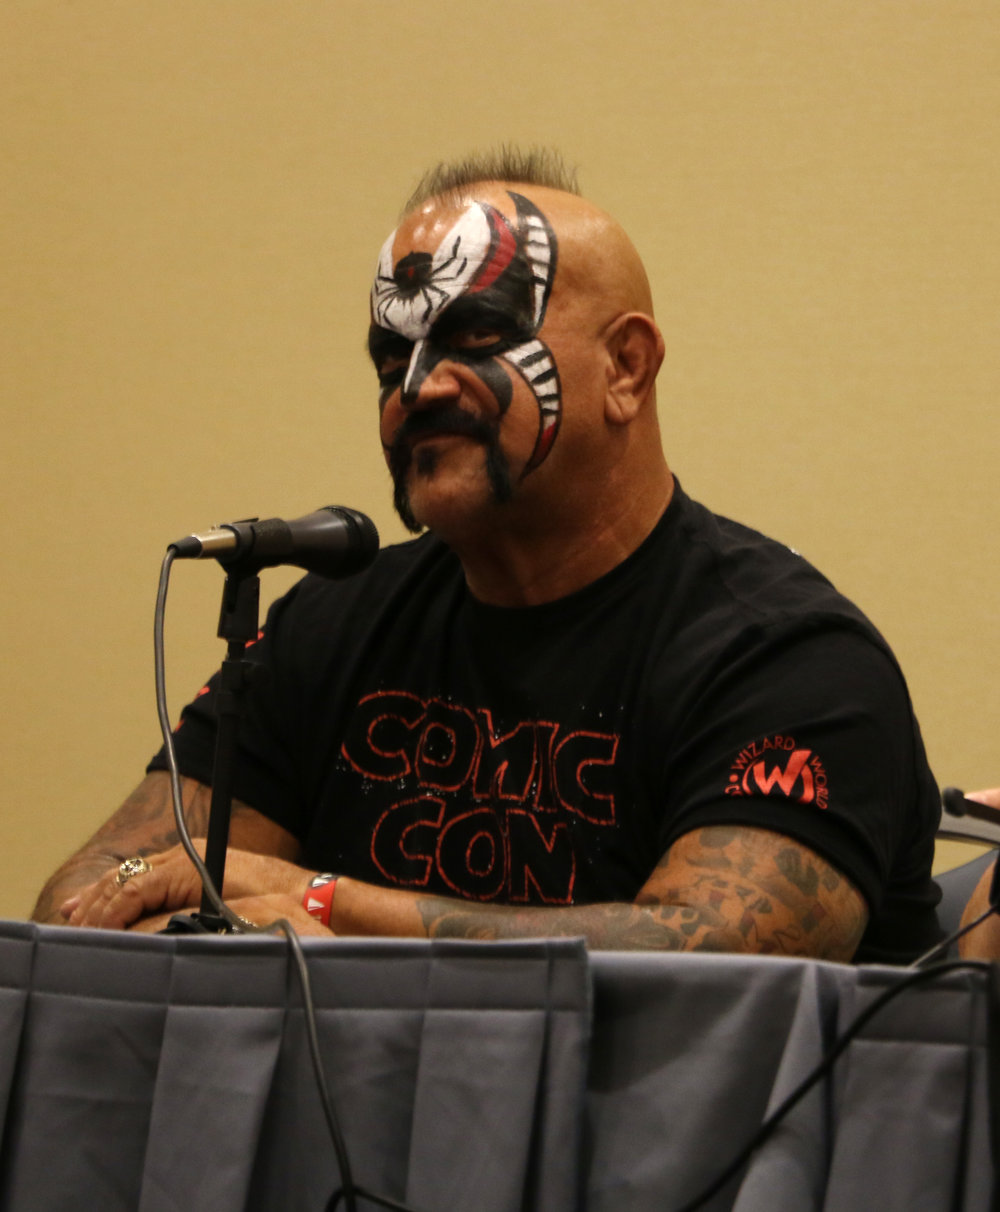 Road Warrior Animal was part of a wrestling Q&A panel along with Tommy Dreamer and Christian at Wizard World Chicago at Donald E. Stephens Convention Center in Rosemont, Ill. on Saturday, August 25, 2018.  (Photo by Mike Pankow)